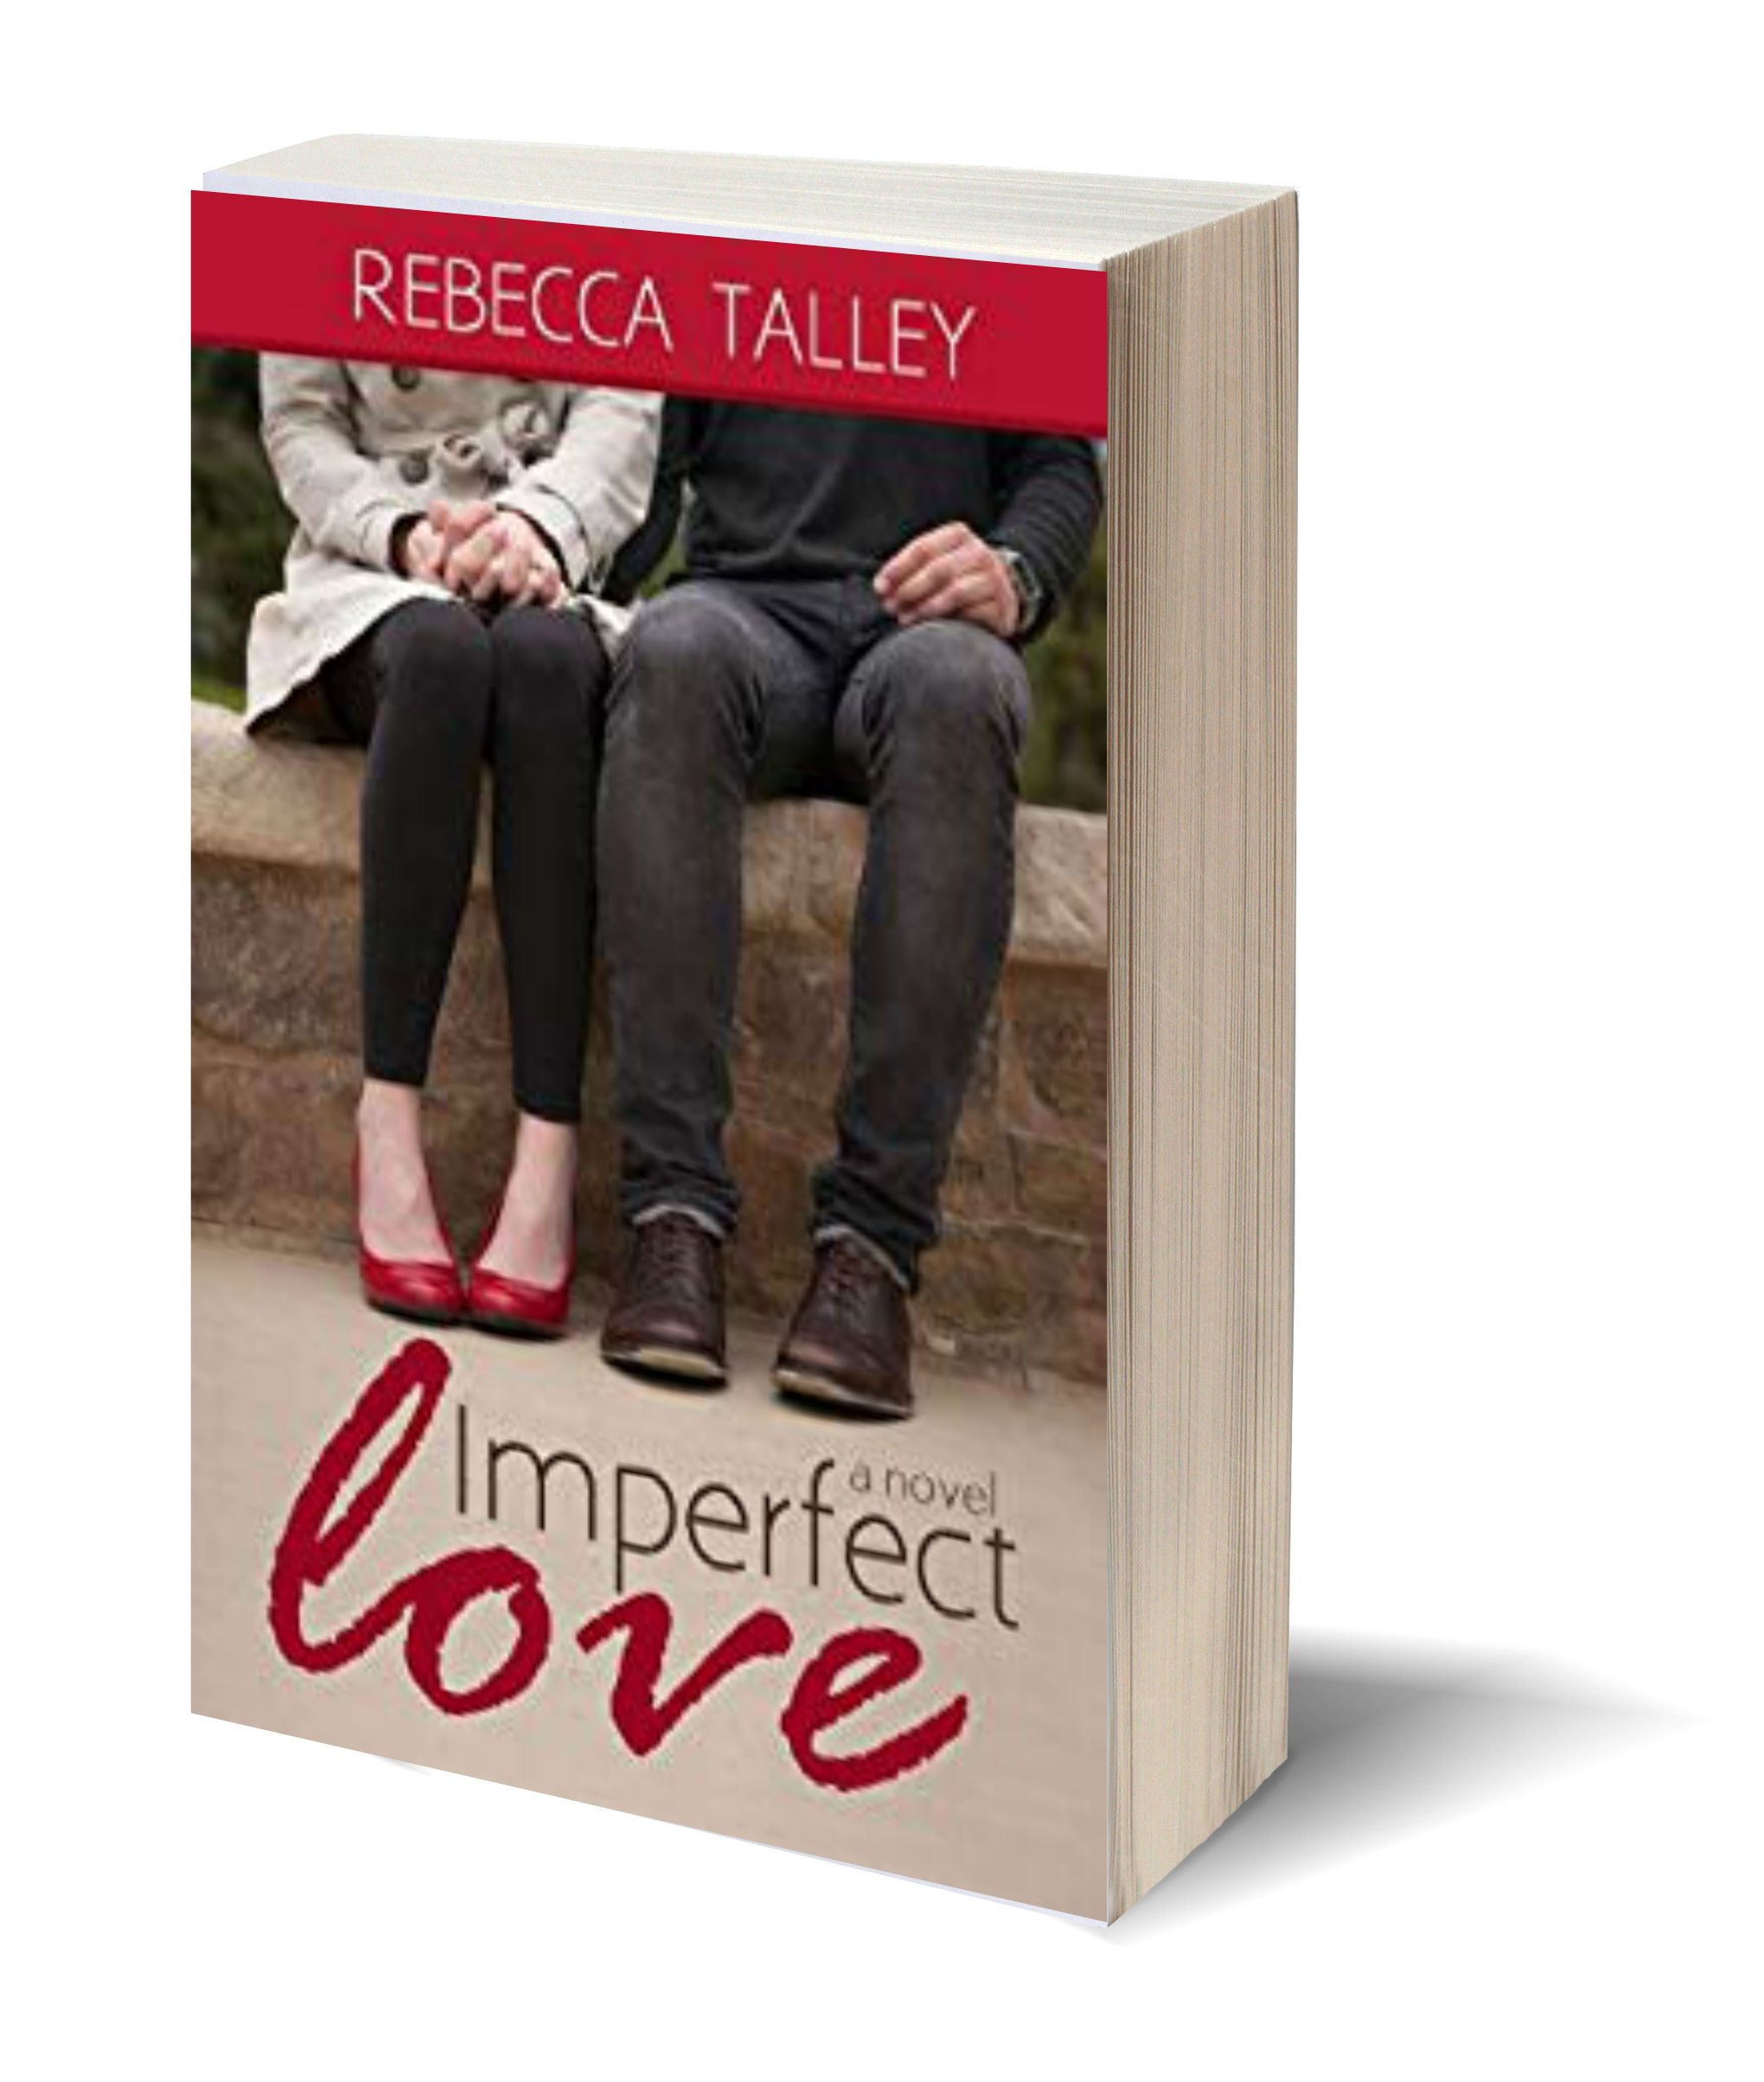 Rebecca Imperfect Love 3D-Book-Template